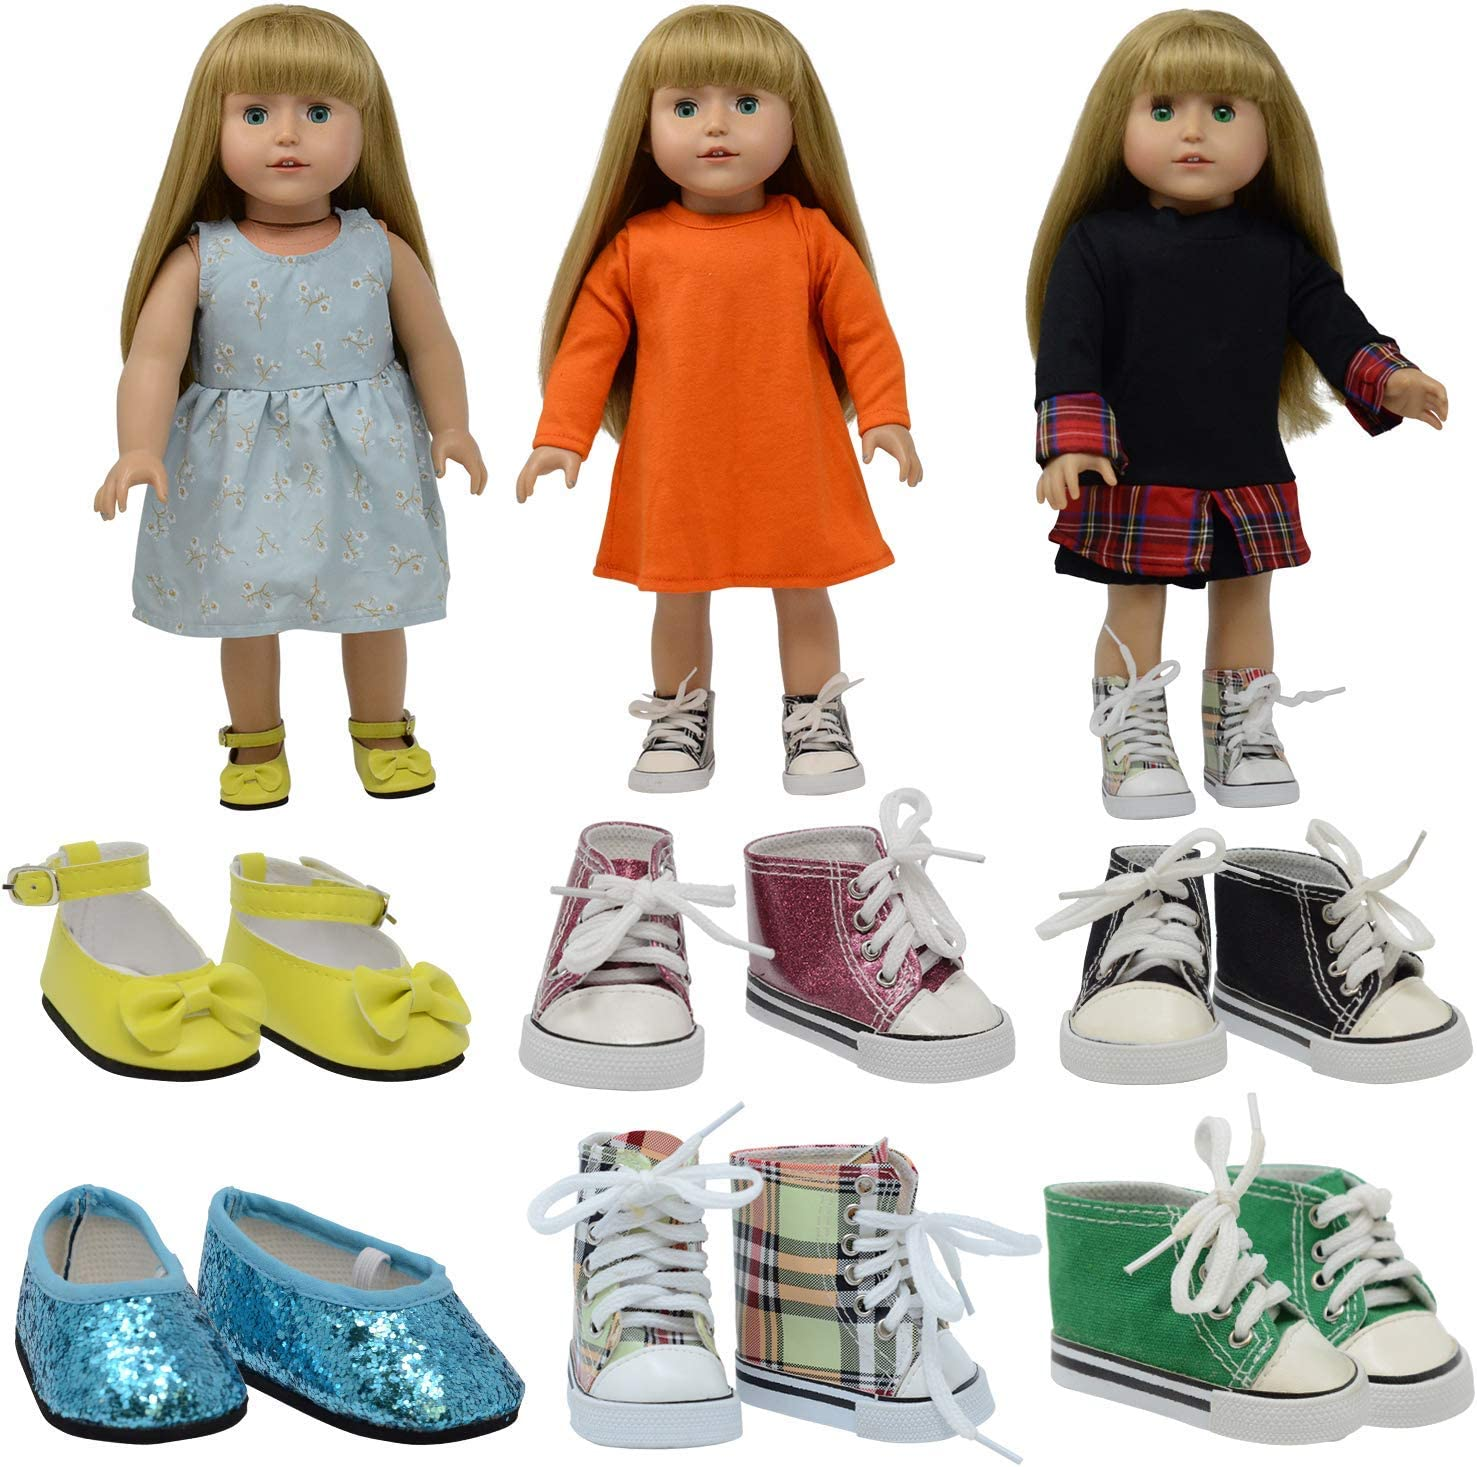 """The New York Doll Collection D360 6 Pairs of Doll Shoes Fits 18"""" Dolls (Style 1) (Pack of 12)"""